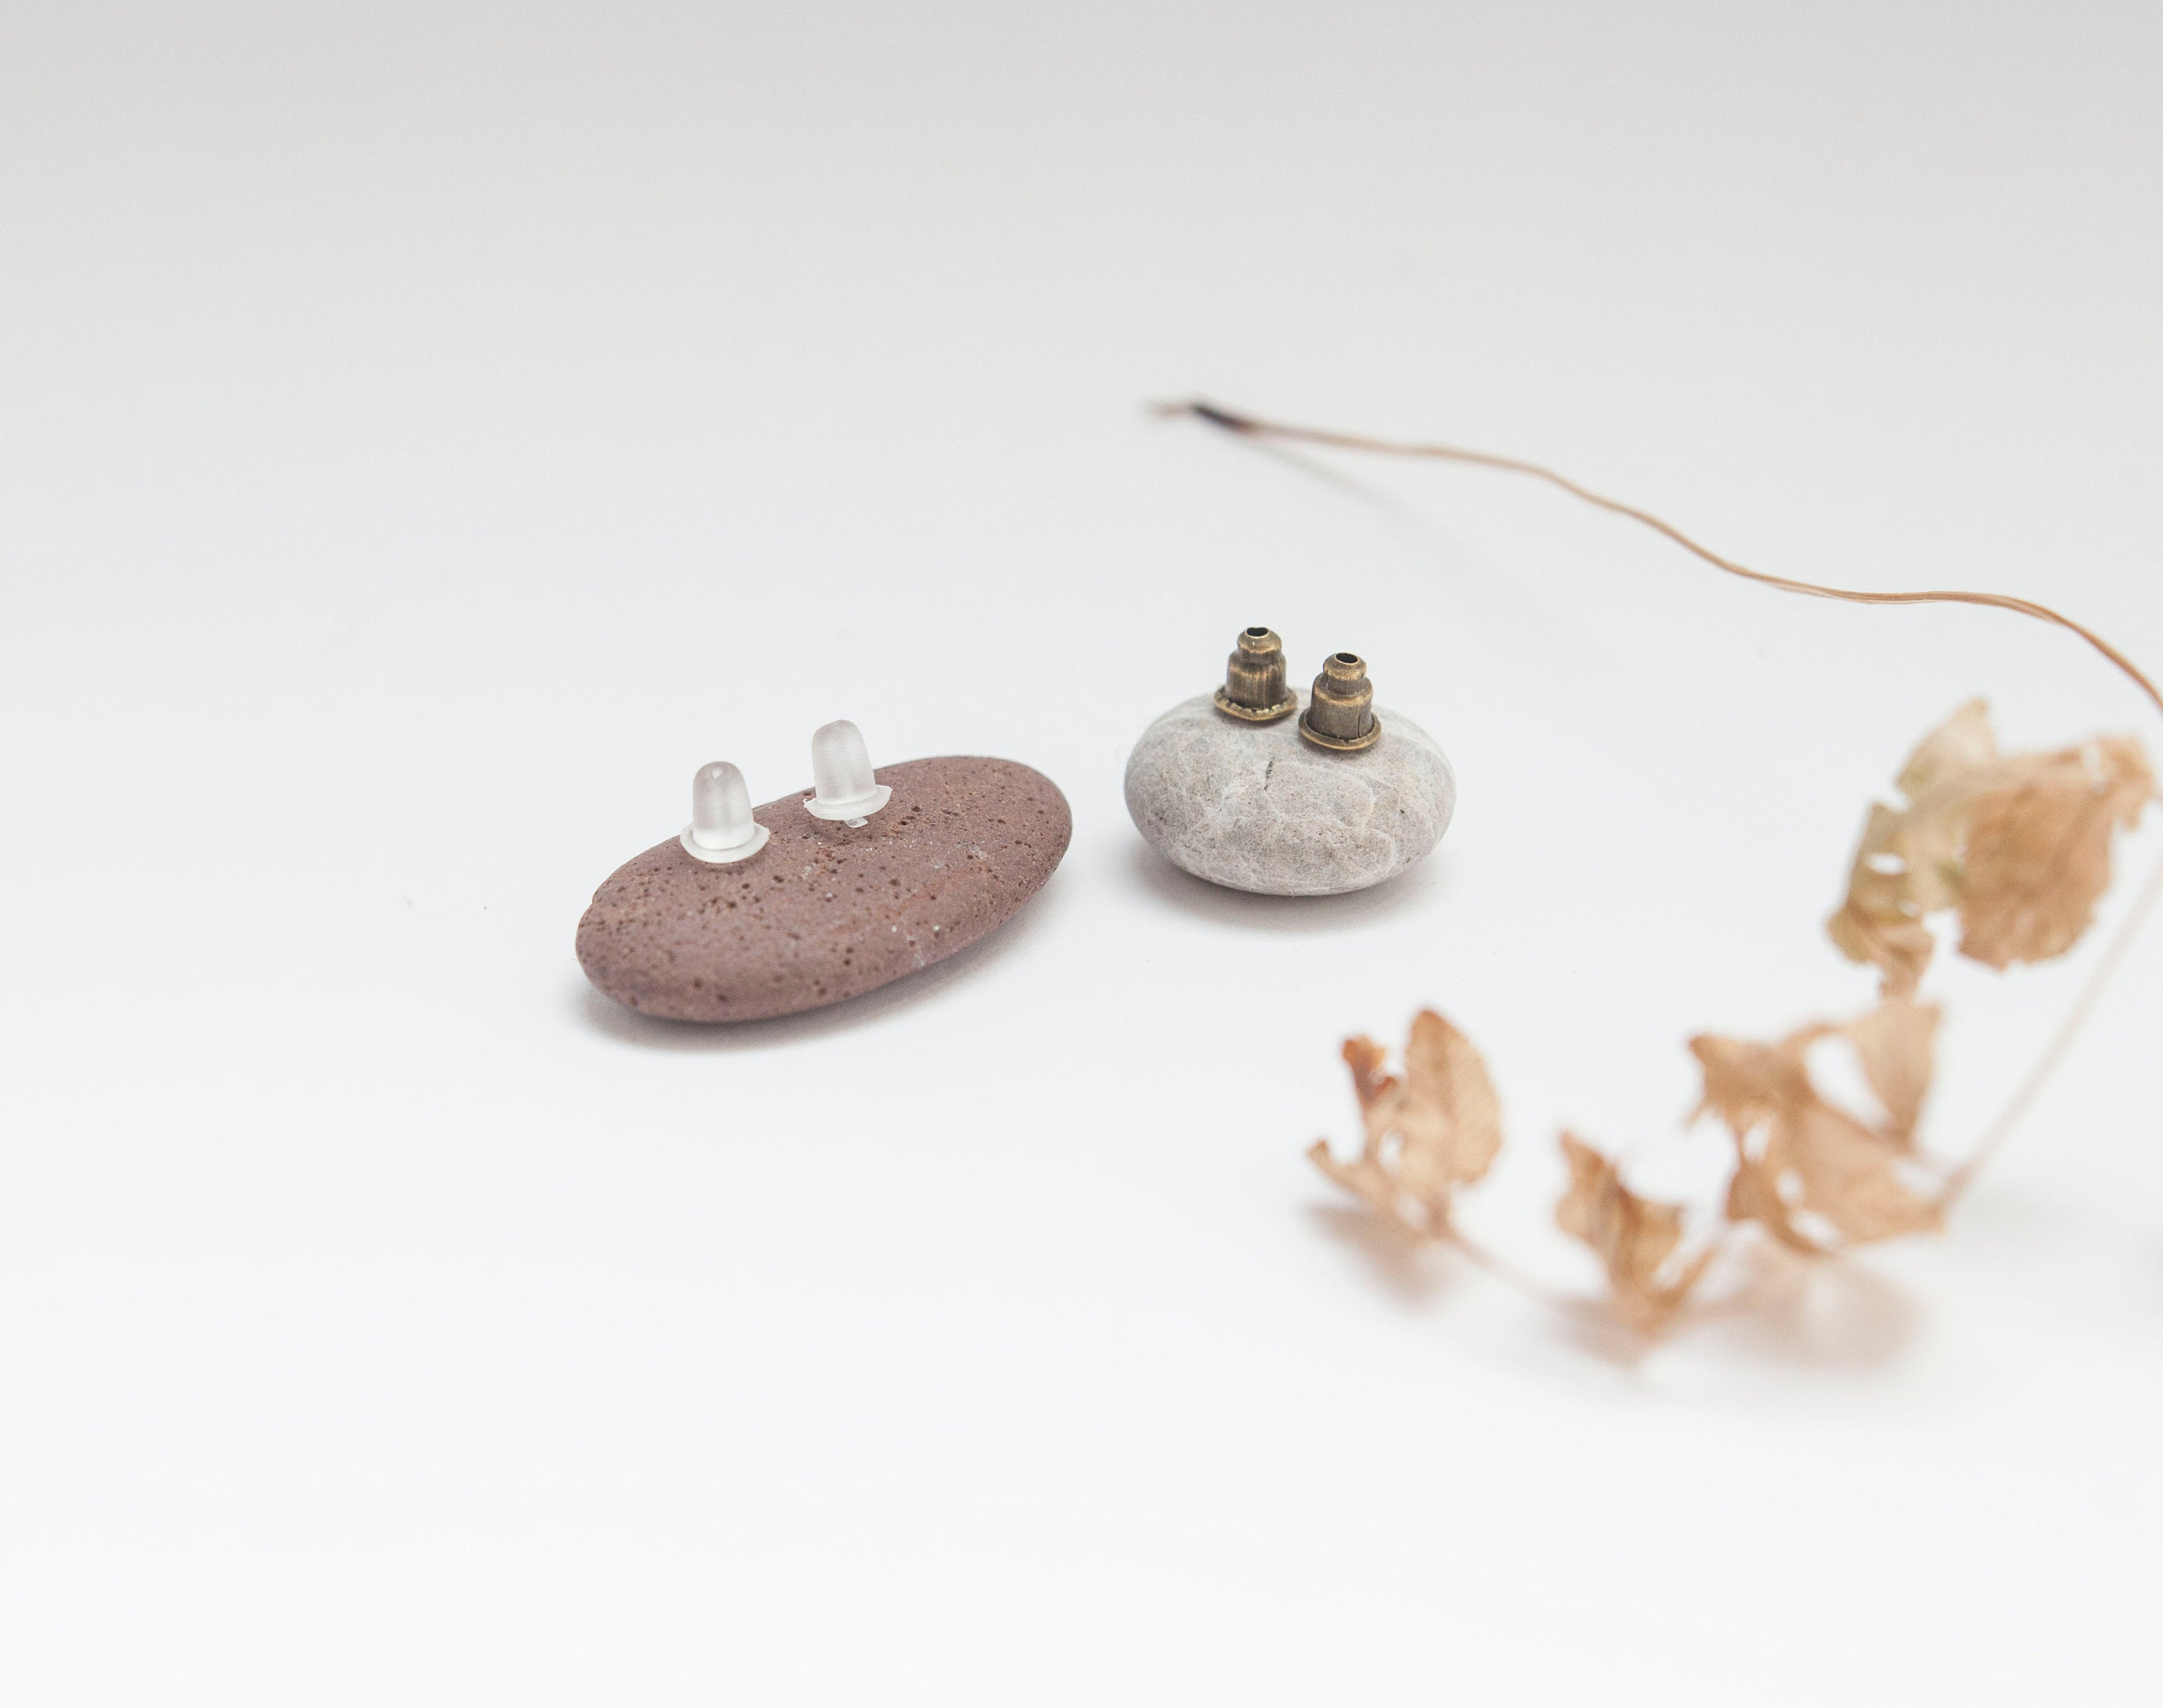 Brass earrings with sterling silver ear post